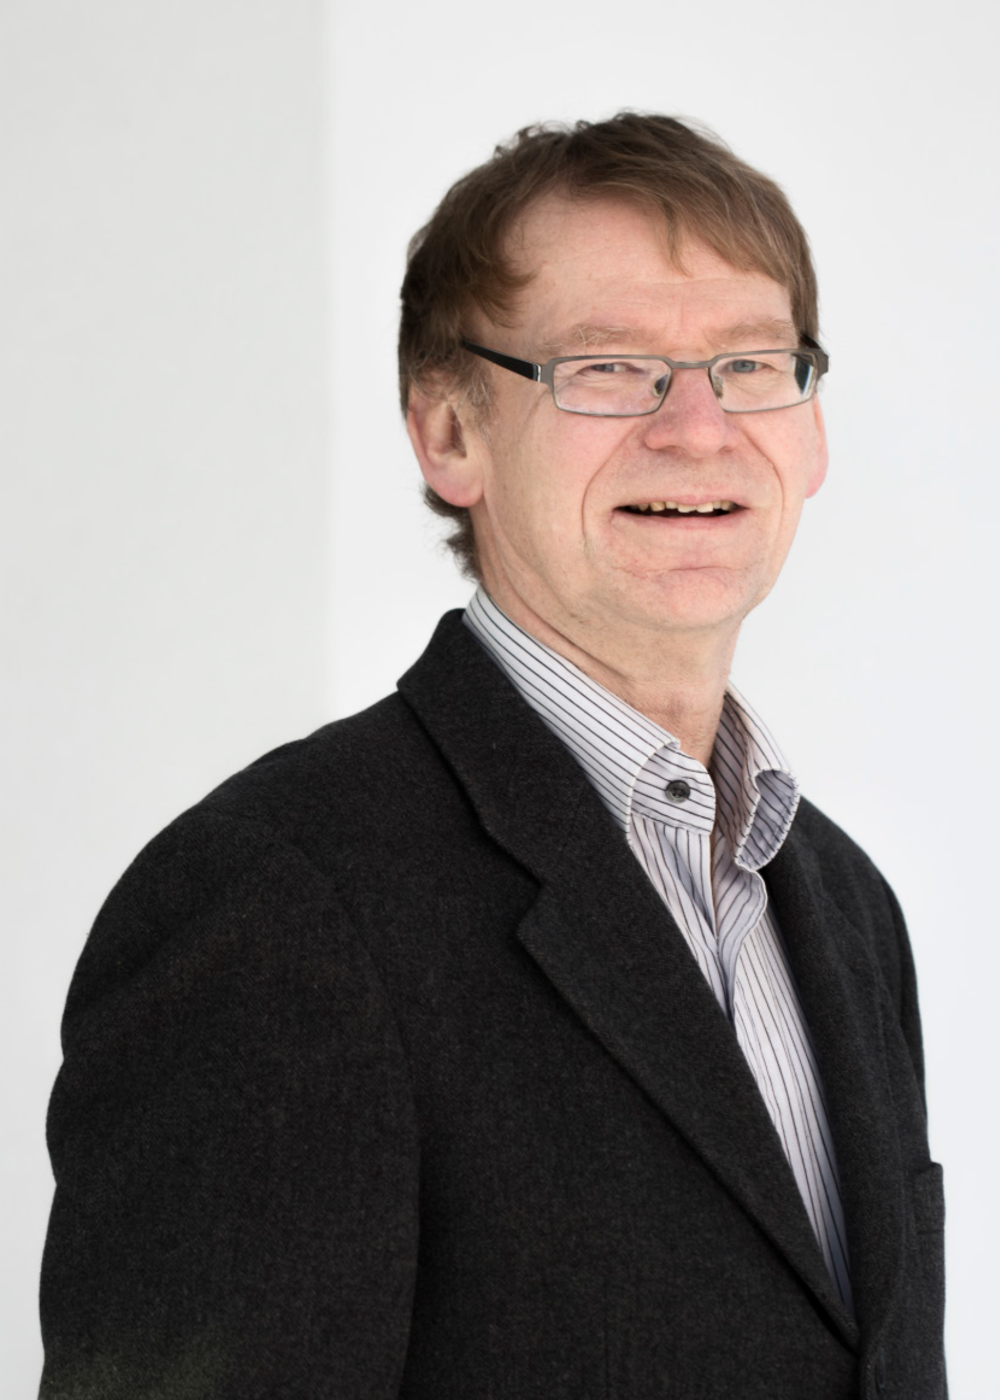 Bjørn has both a M.Sc. in electrical engineering and an MBA. He has 10 years in Norsk Data and Telenor, 10 years as head of research at SINTEF for electronics and Cybernetics, 5 years as head of Visma´s R&D department and 8 years with Kongsberg Defence as section head of their hardware deviation. Bjørn also sits on a few boards, among others Tekna.     Phone: +47 930 59 300       Email: bb@Hy5.no